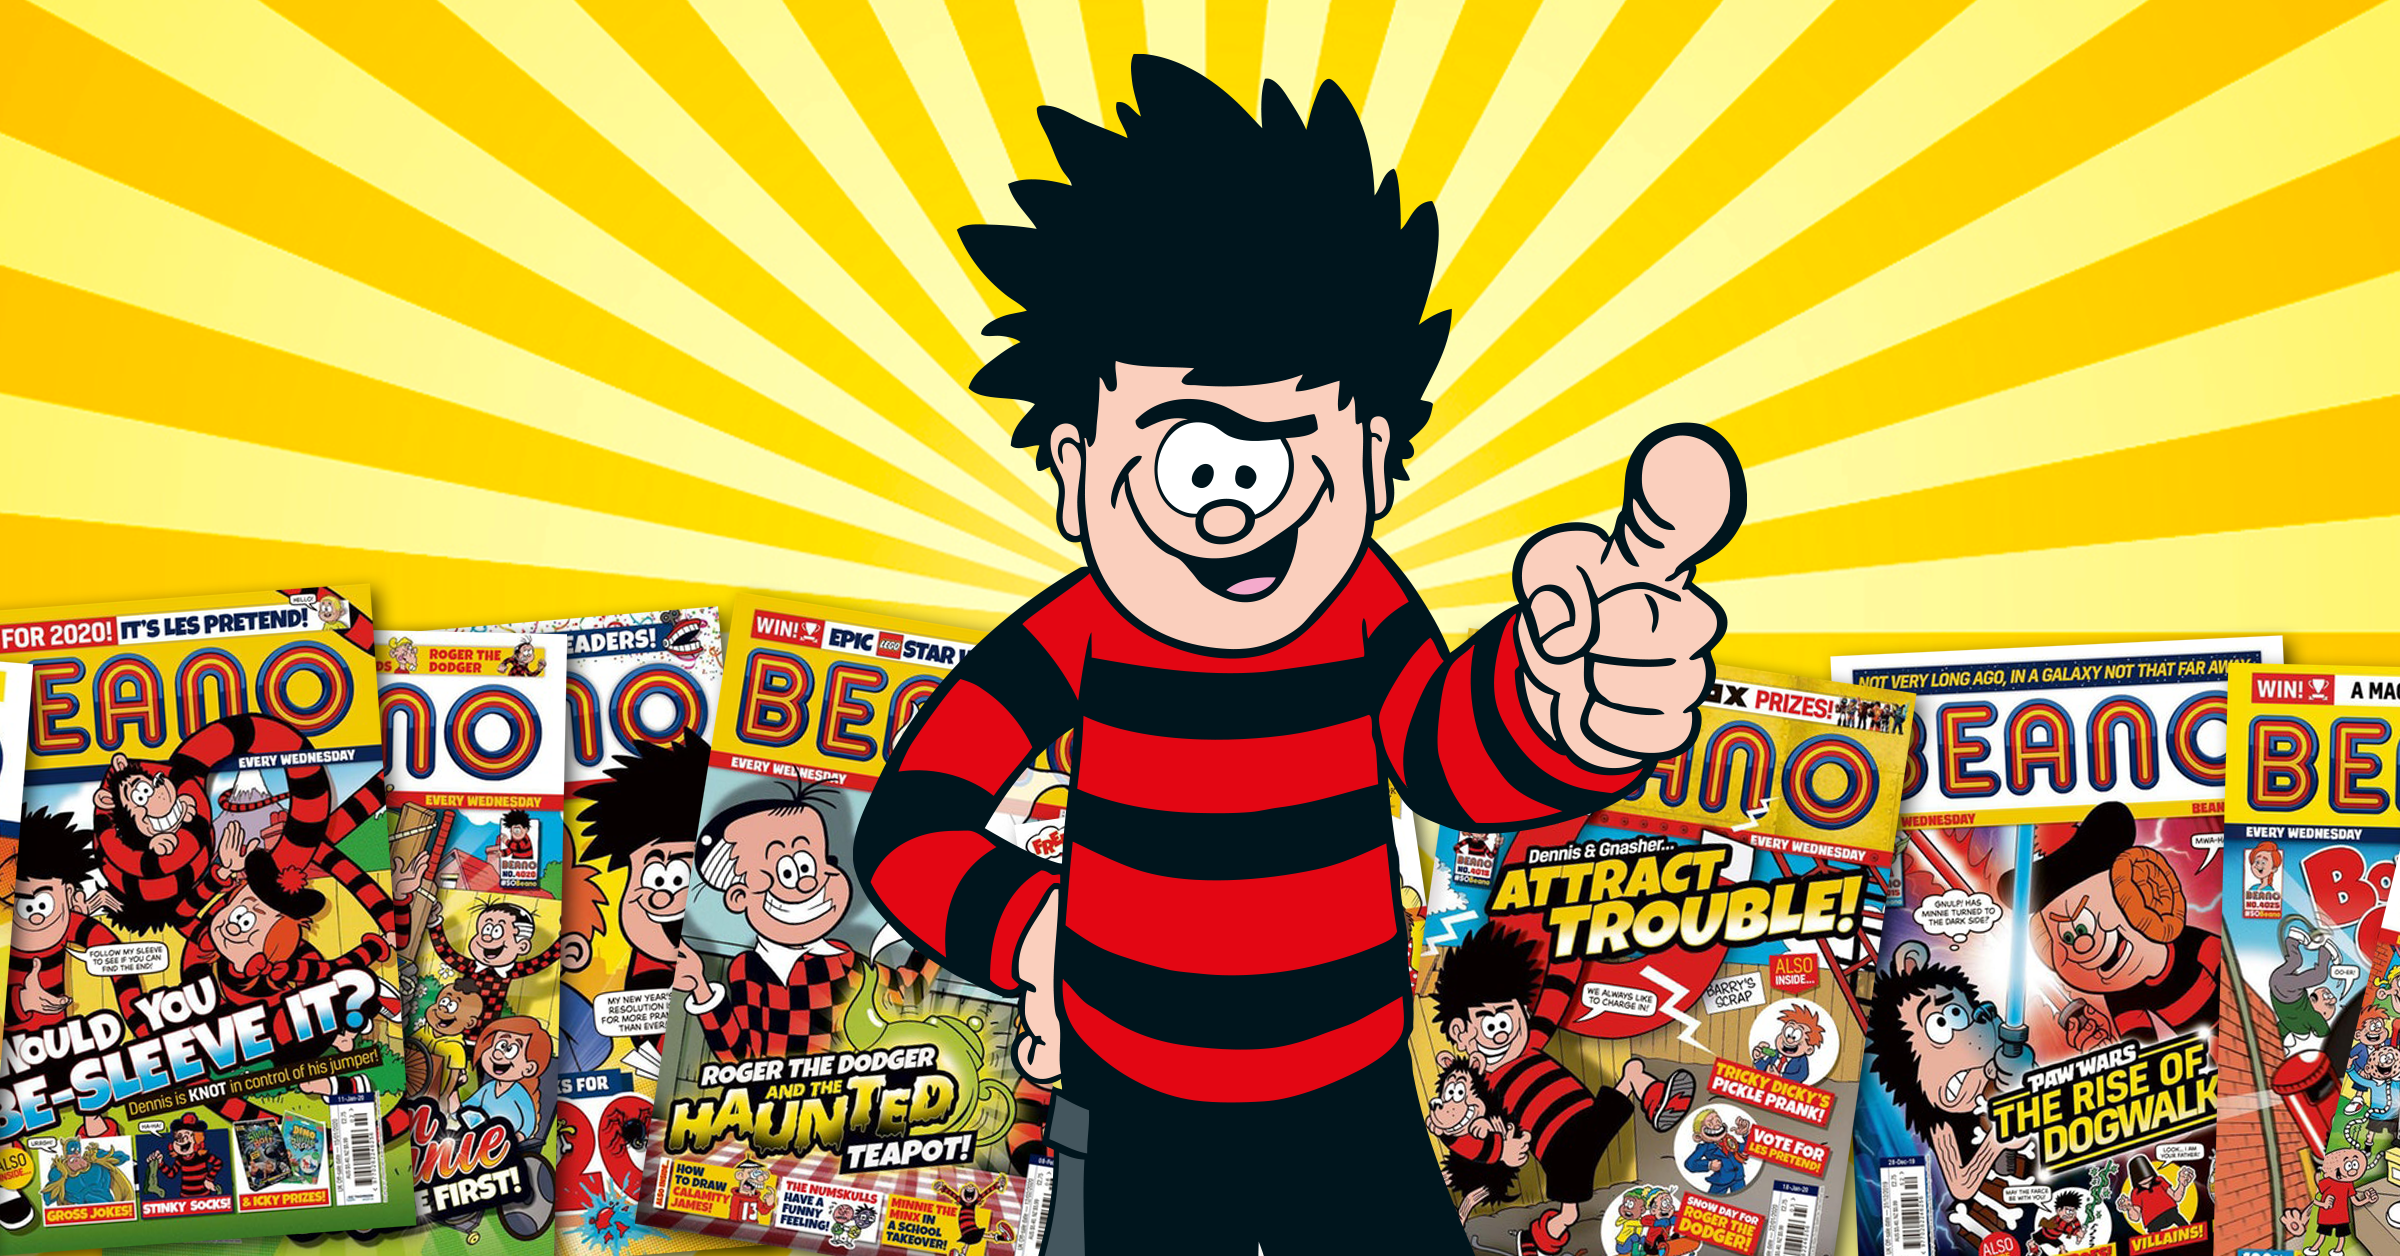 Dennis pointing his finger with copies of Beano in the background